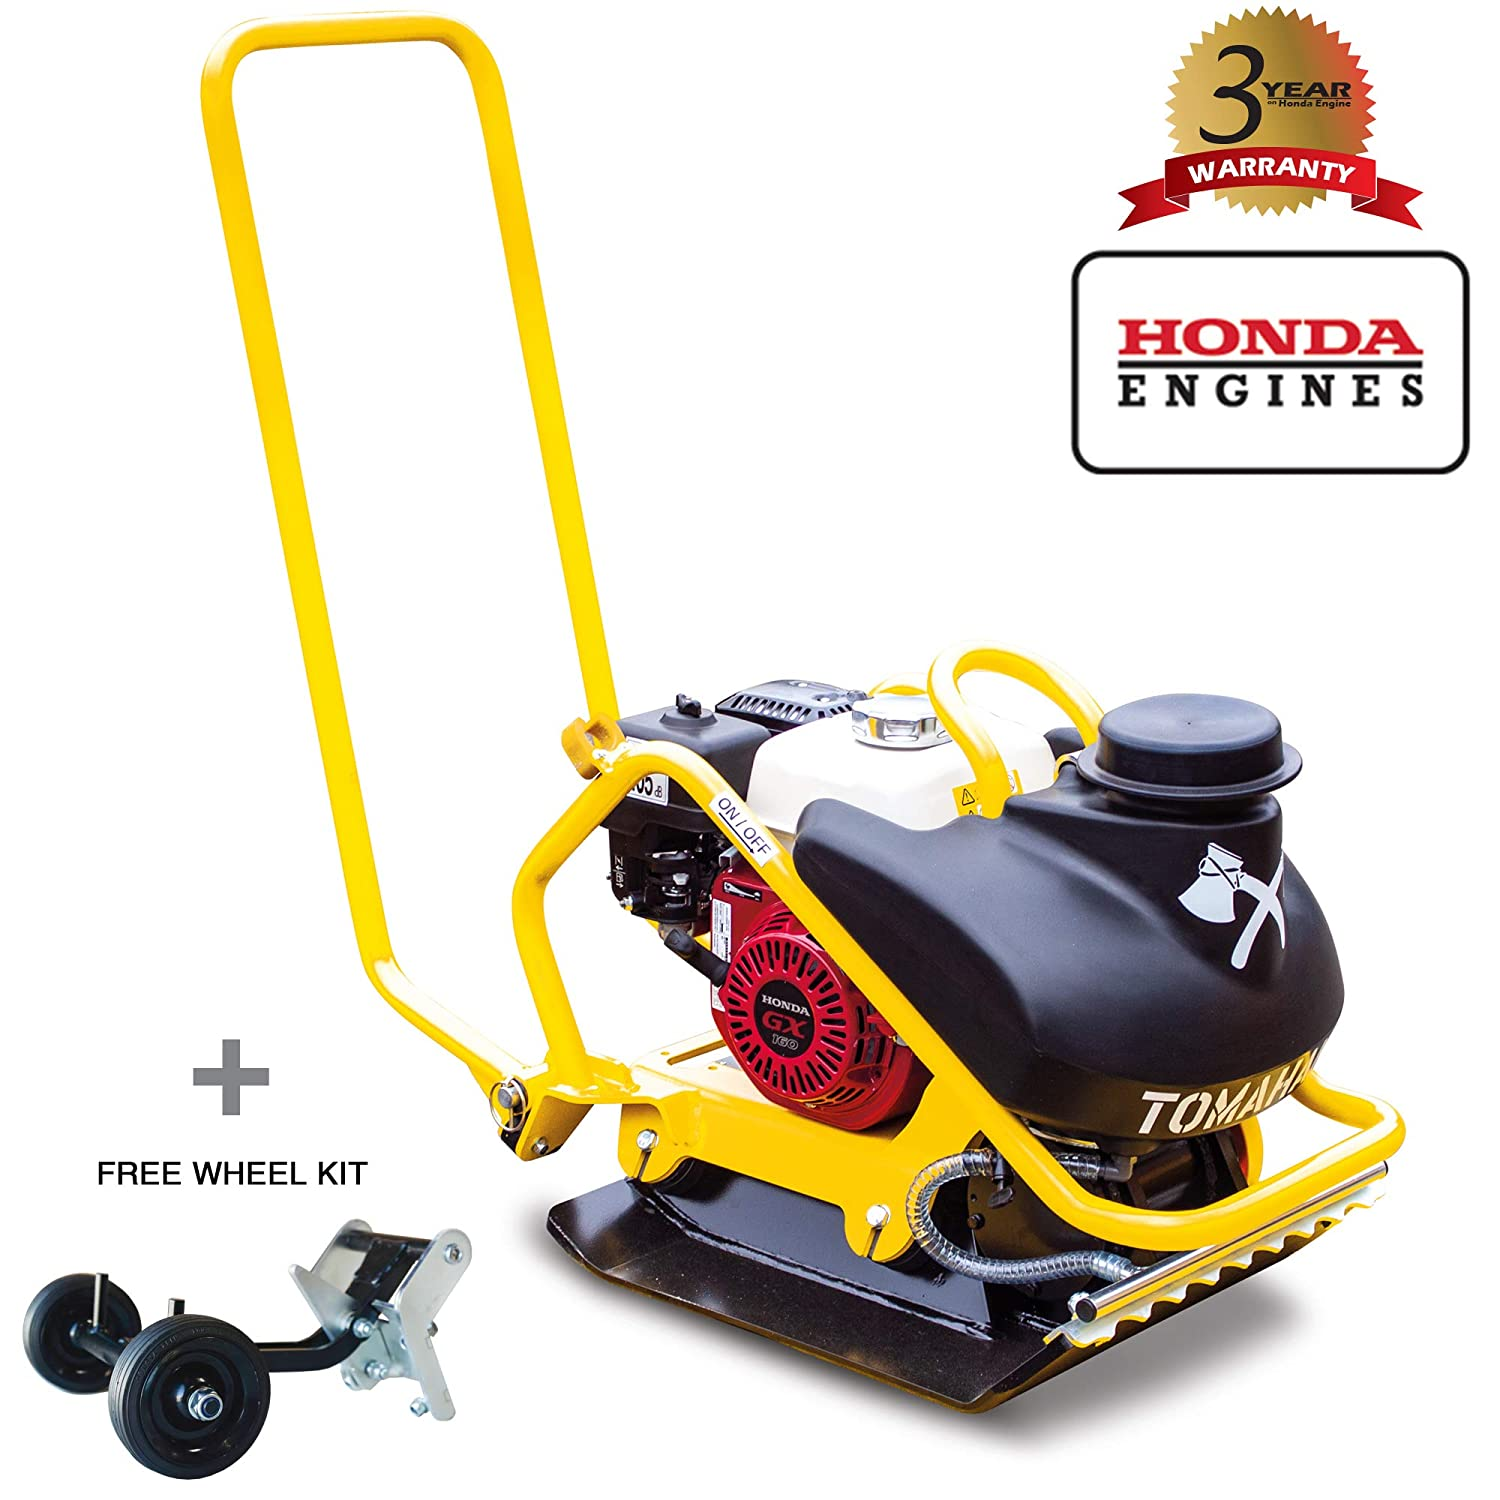 Tomahawk 5.5 HP Honda Vibratory Plate Compactor Tamper for Dirt, Asphalt, Gravel, Soil Compaction with 3.5 Gallon Water Tank and GX160 Engine